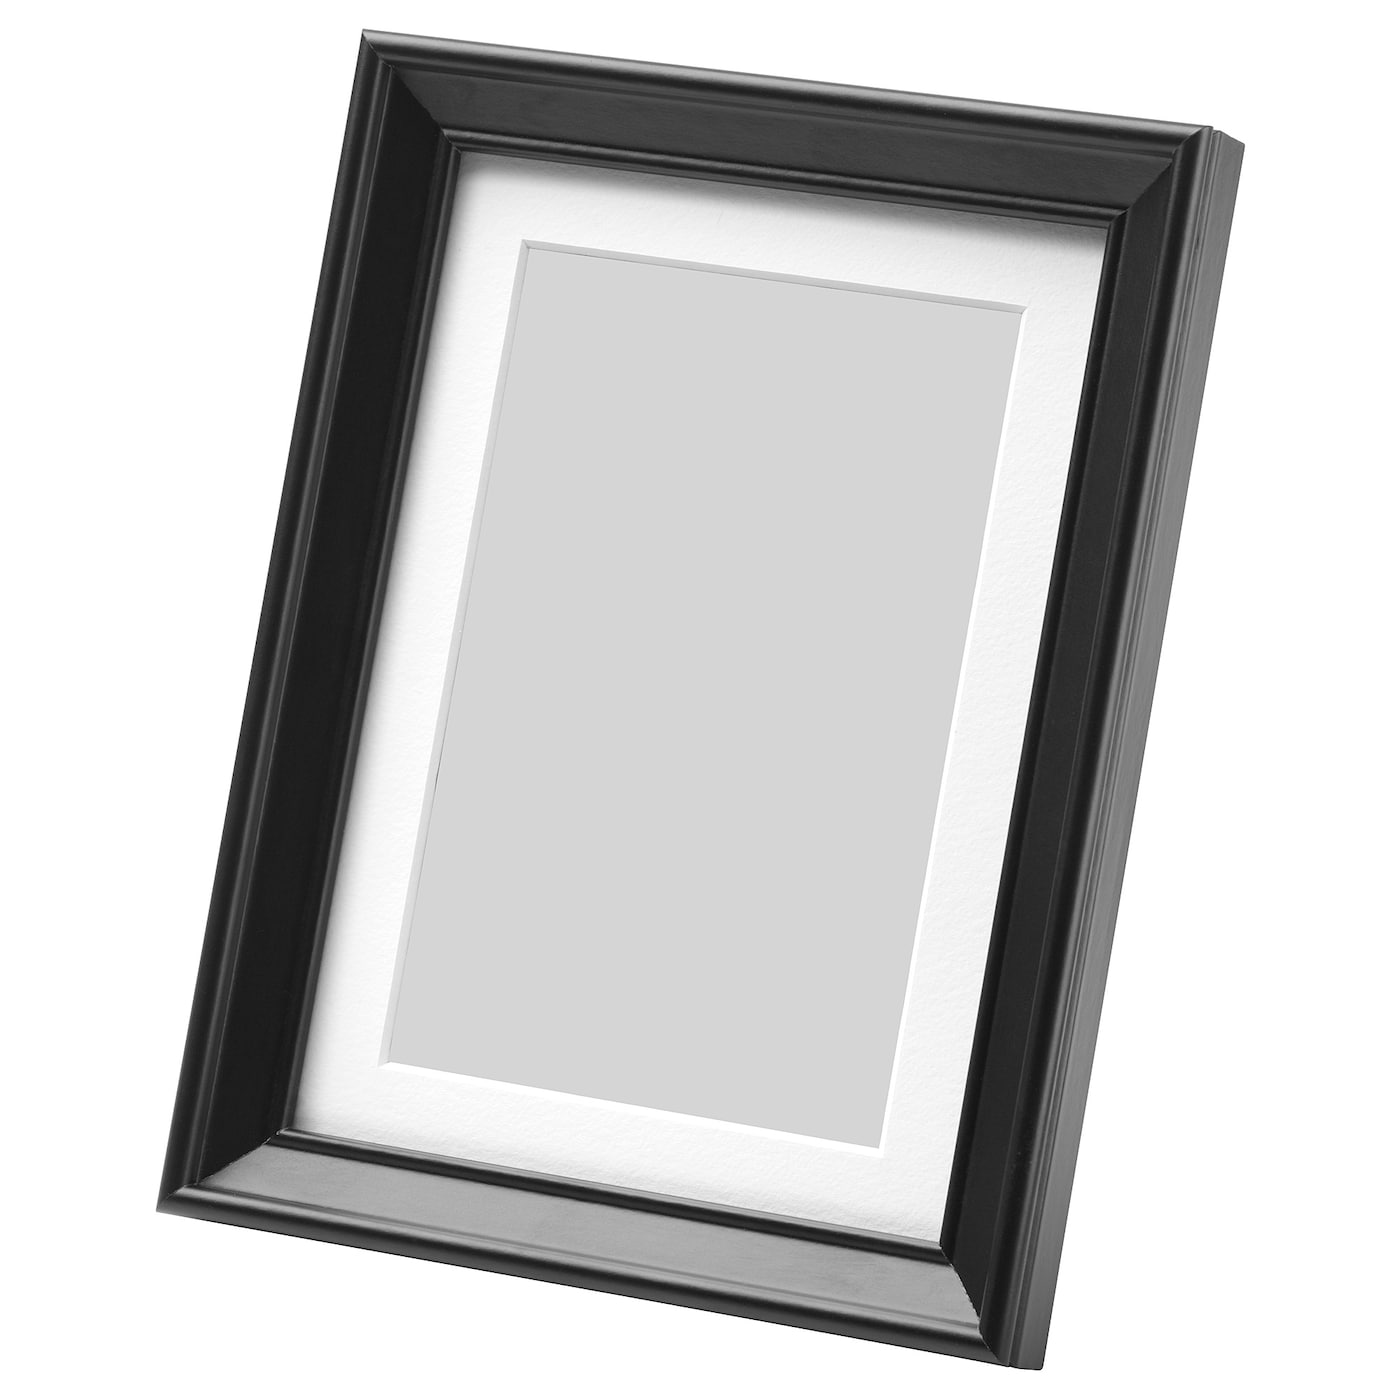 Ikea KnoppÄng Frame Can Also Be Used Without Mount To Take A Larger Picture